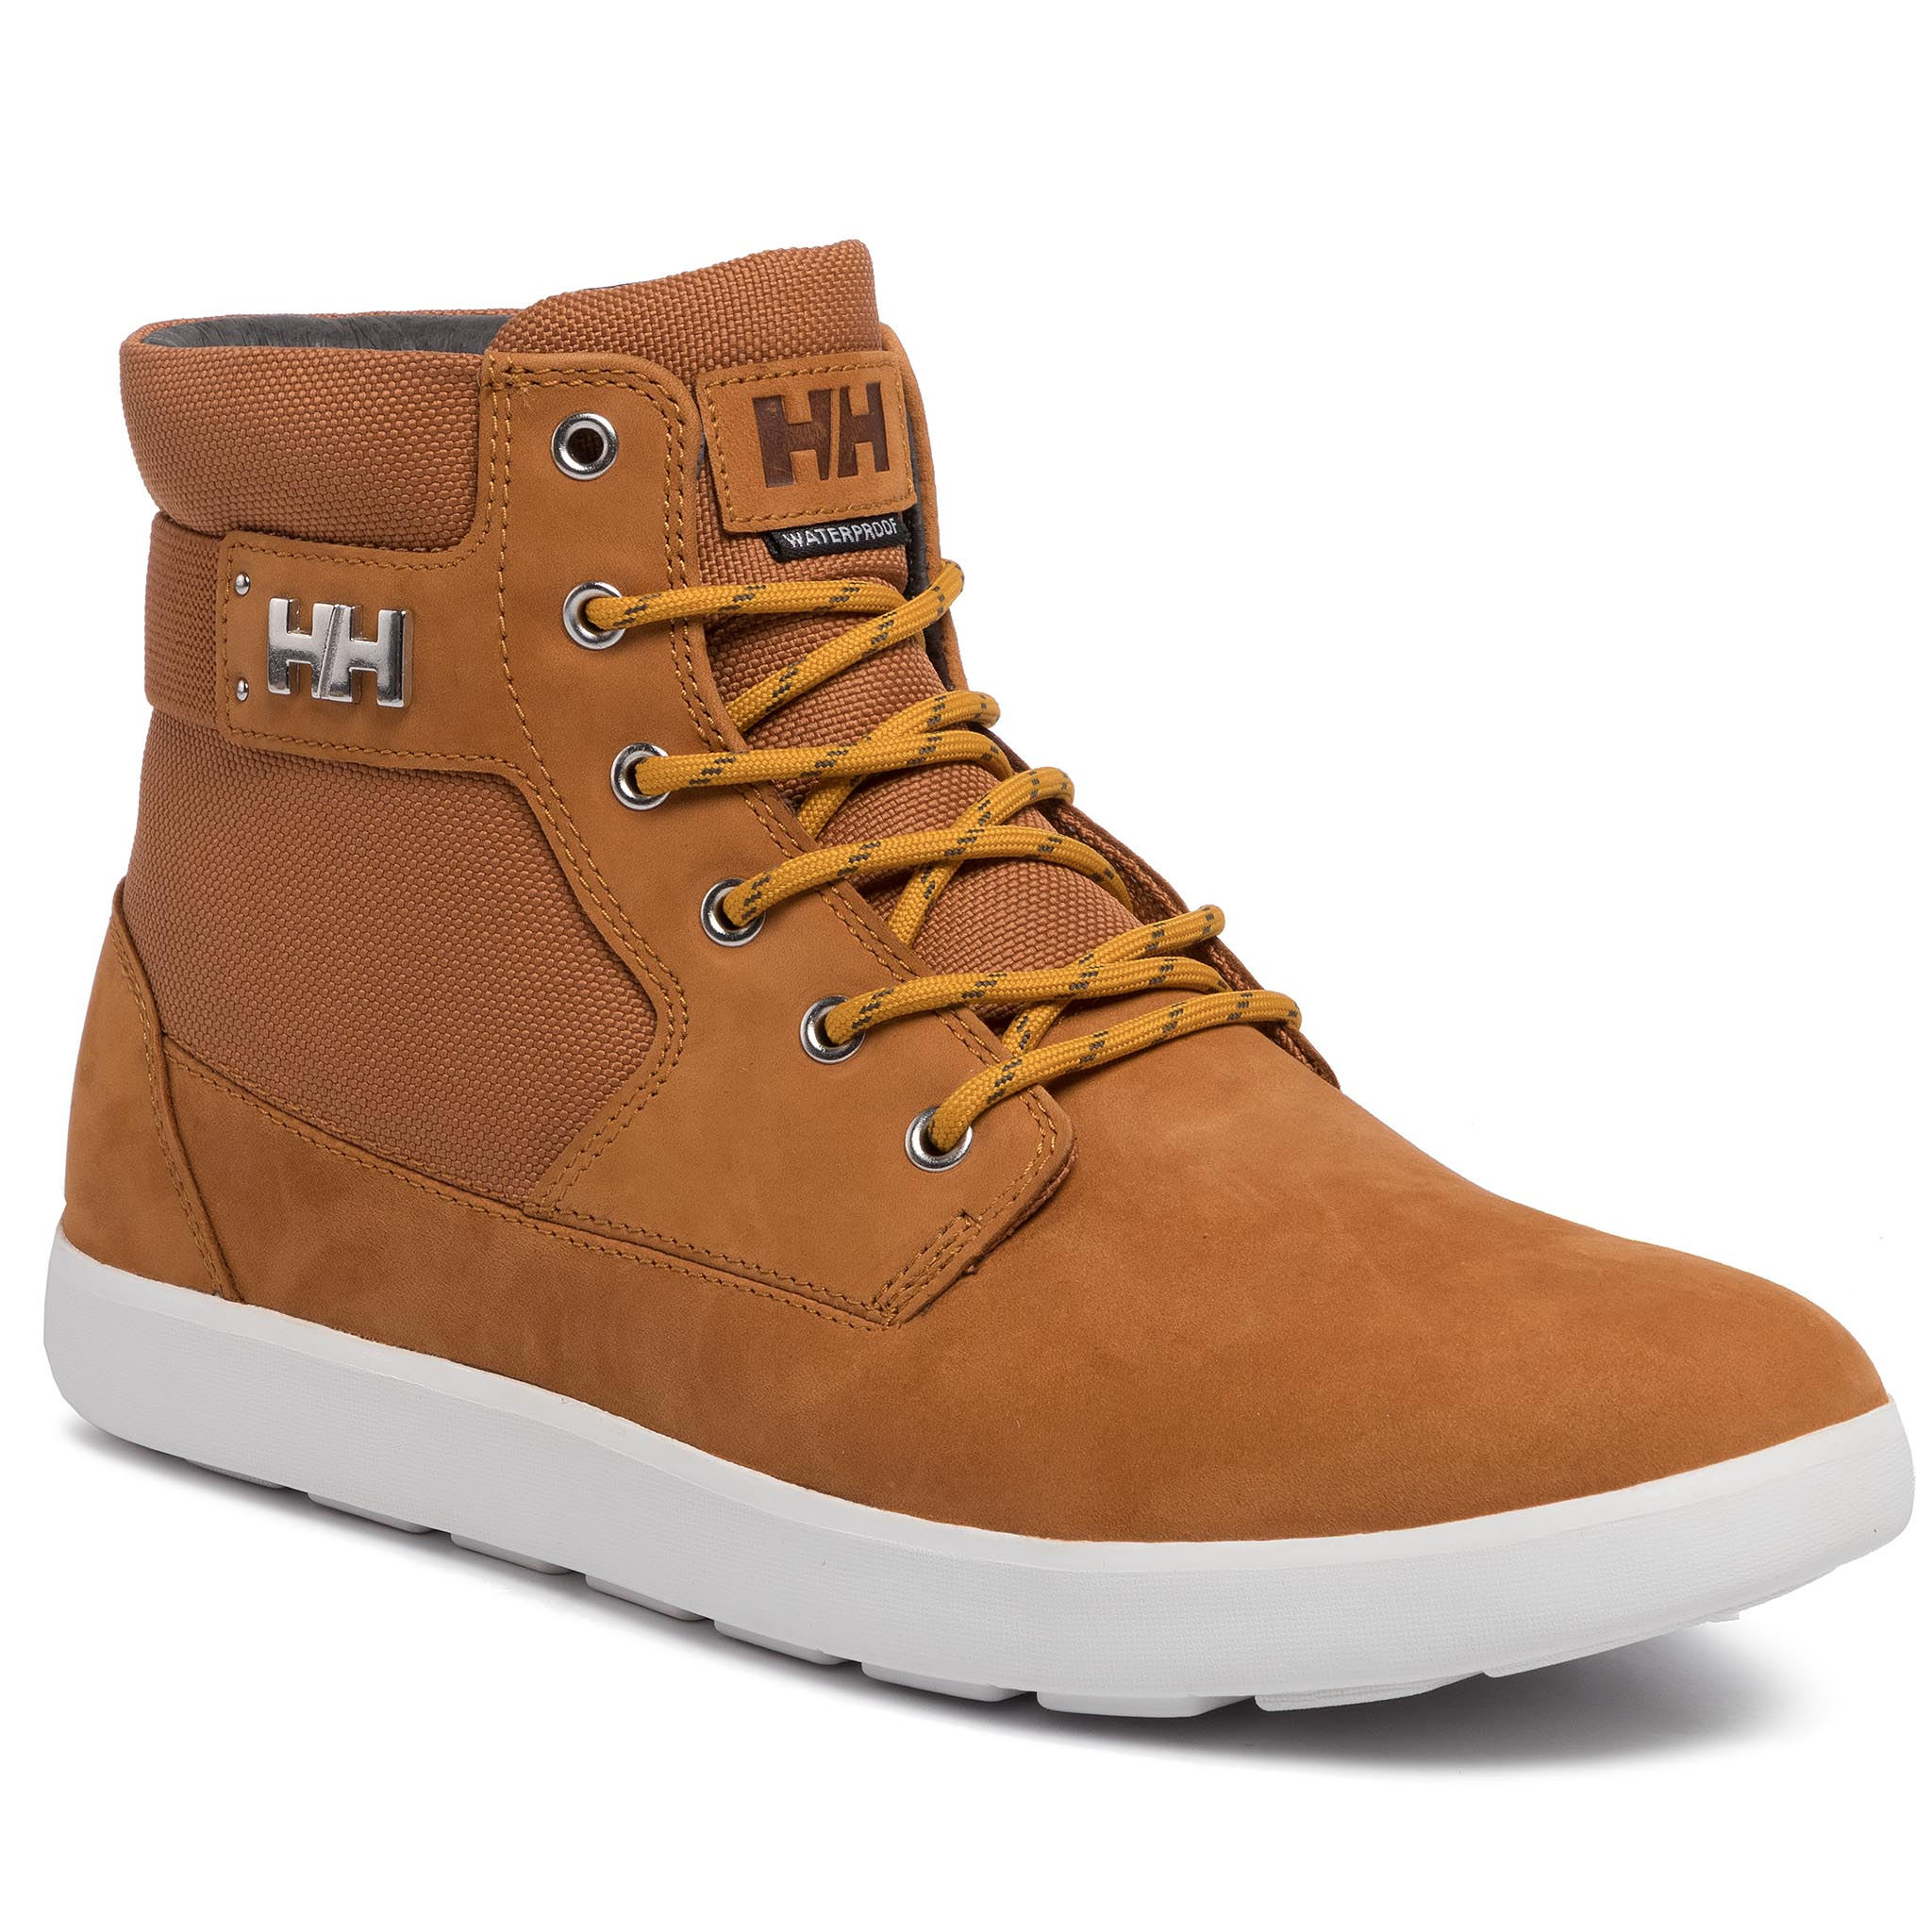 Ghete Helly Hansen - Stockholm 2 11-510.725 Honey Wheat/Cashew/Off White imagine epantofi.ro